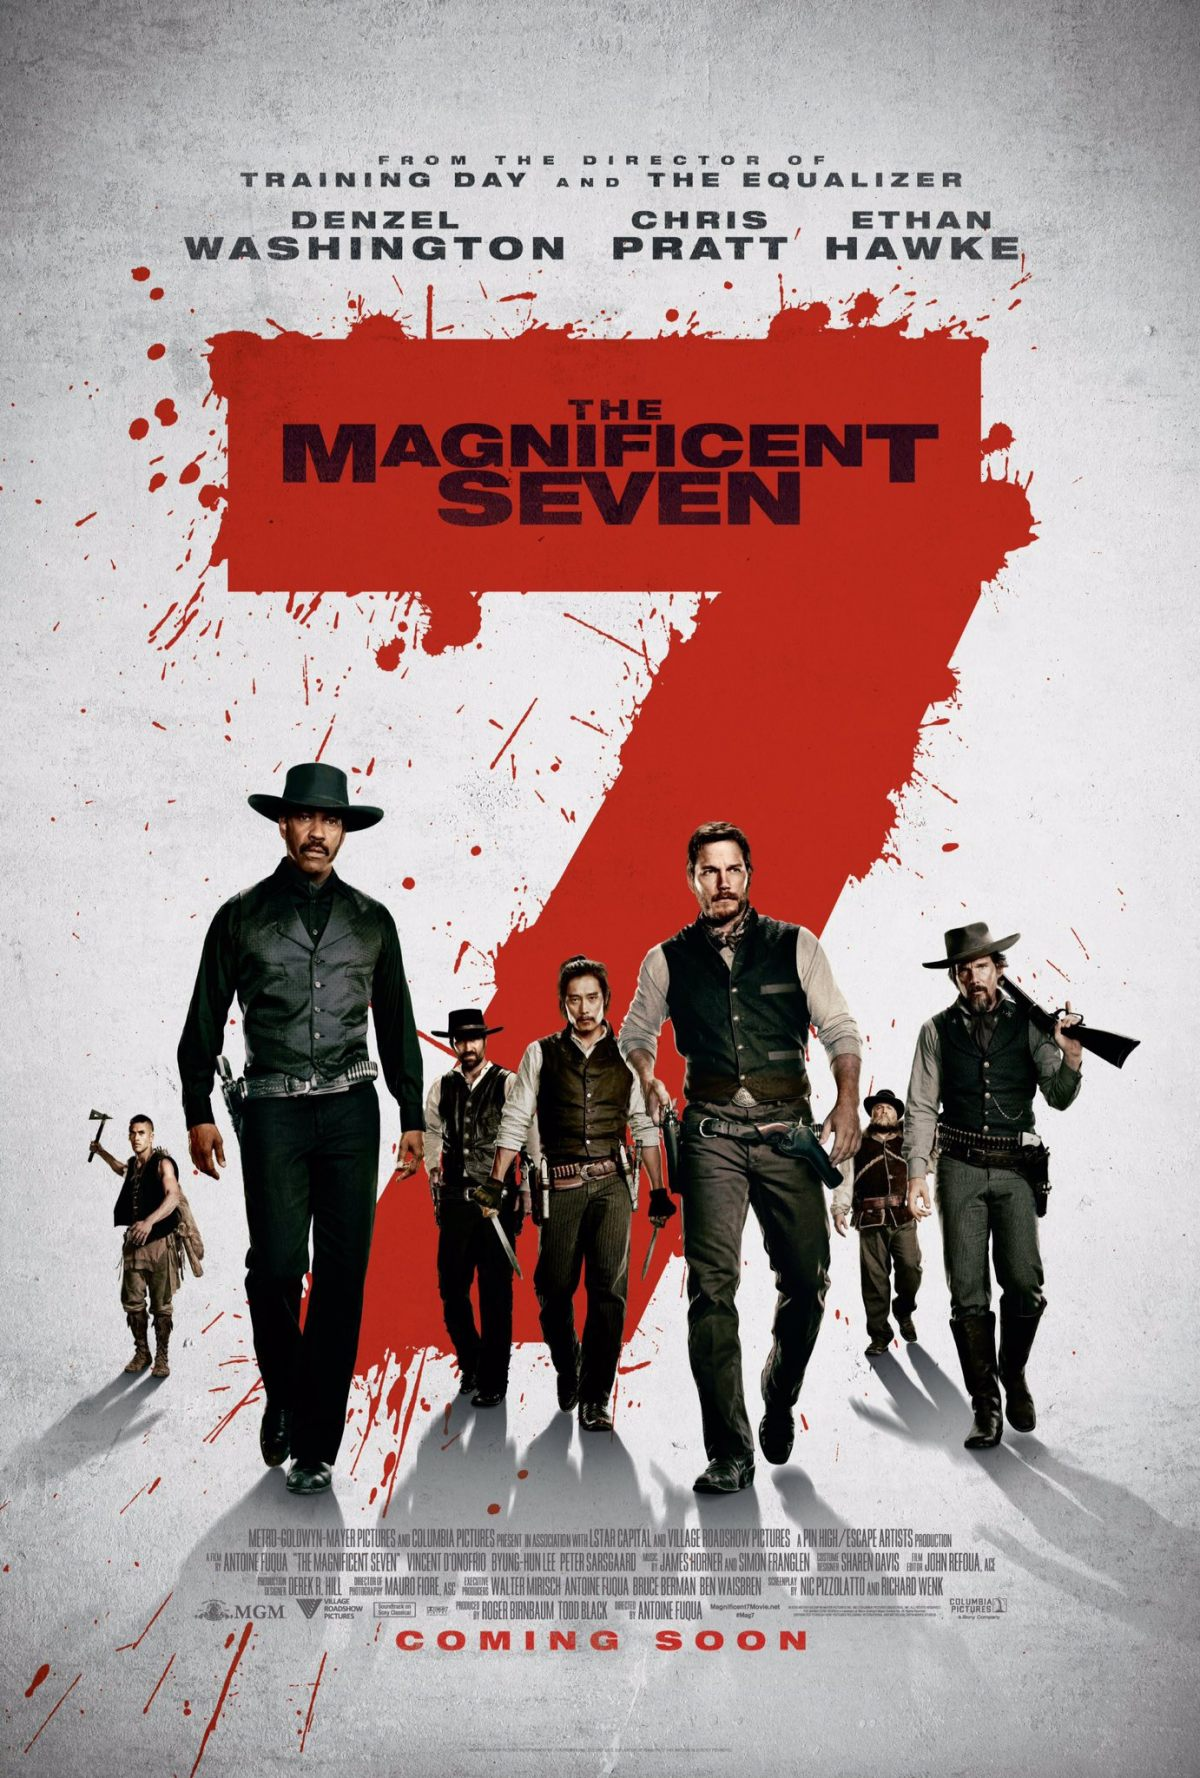 Episode 338: The Magnificent Seven